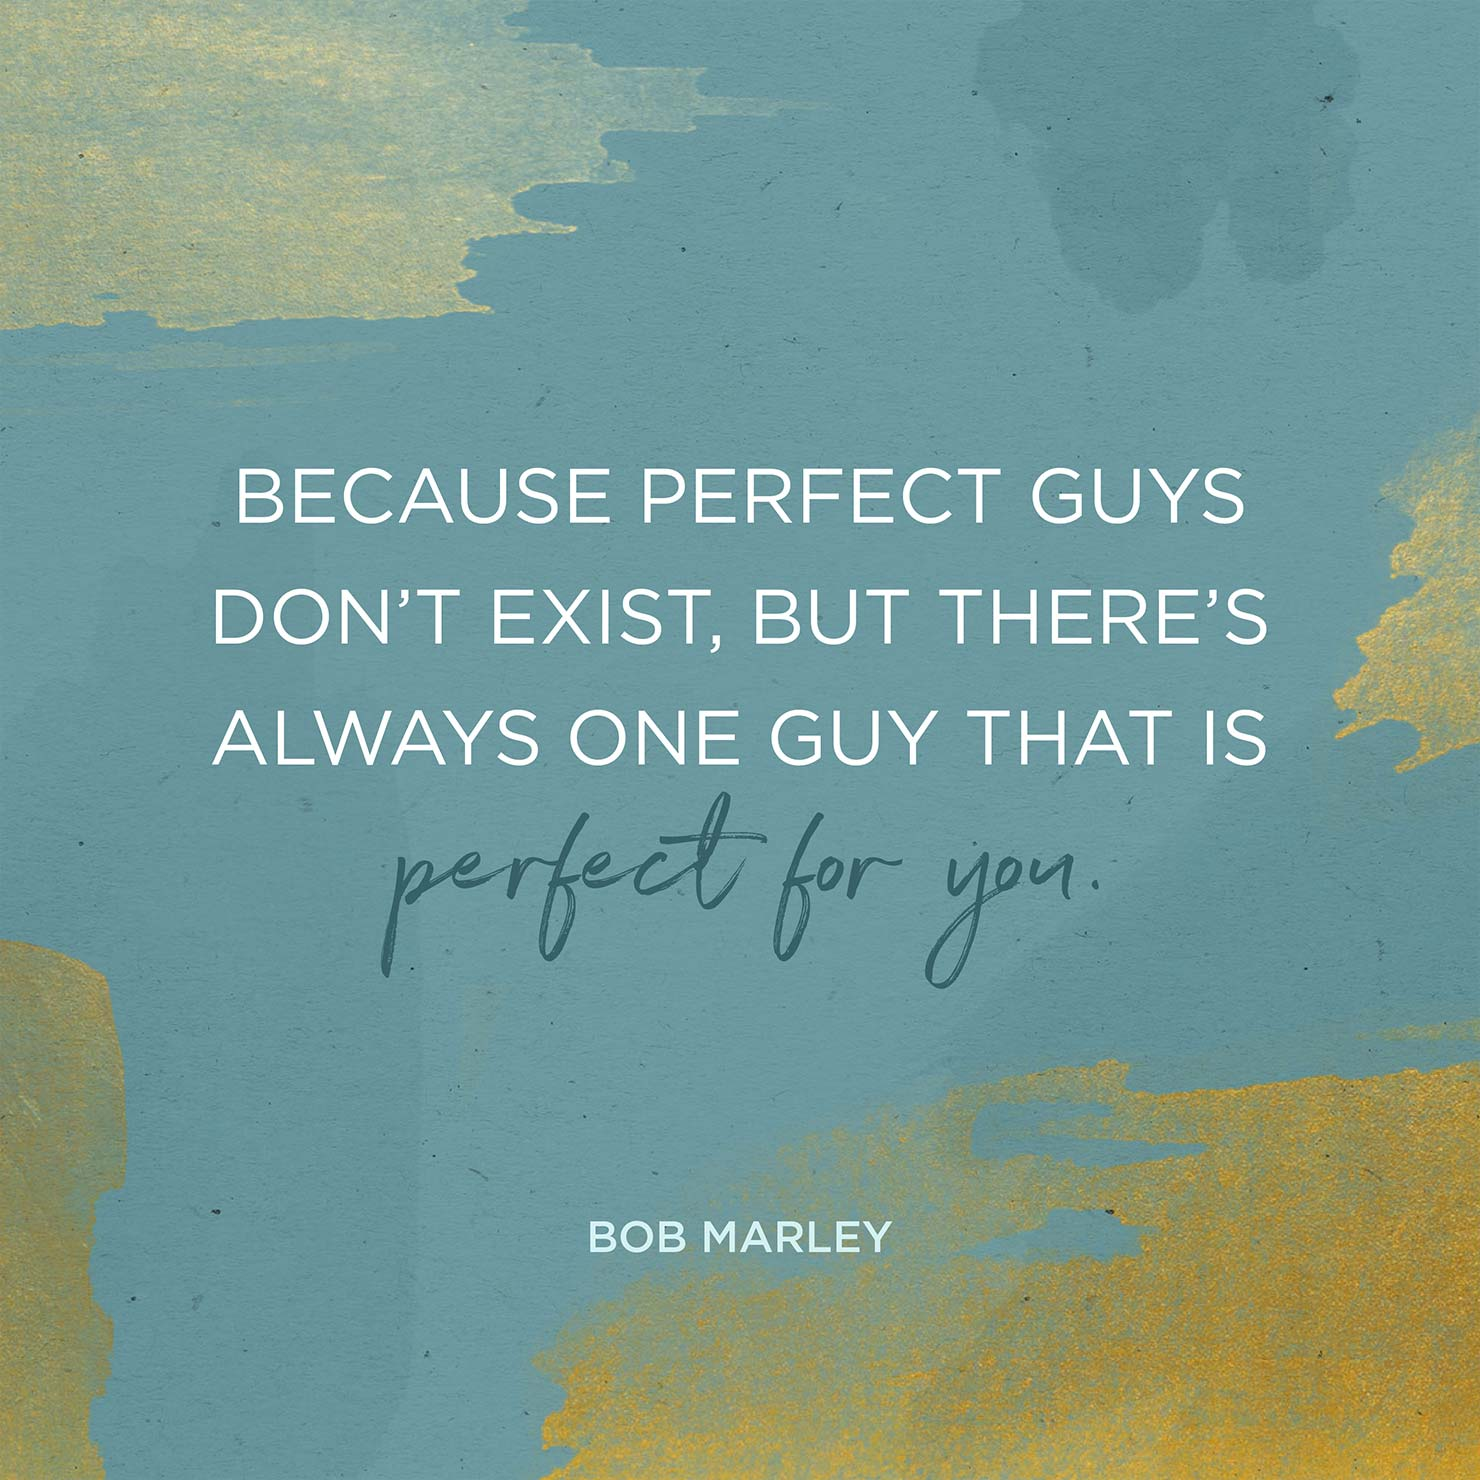 Bob Marley perfect guys quote illustration.